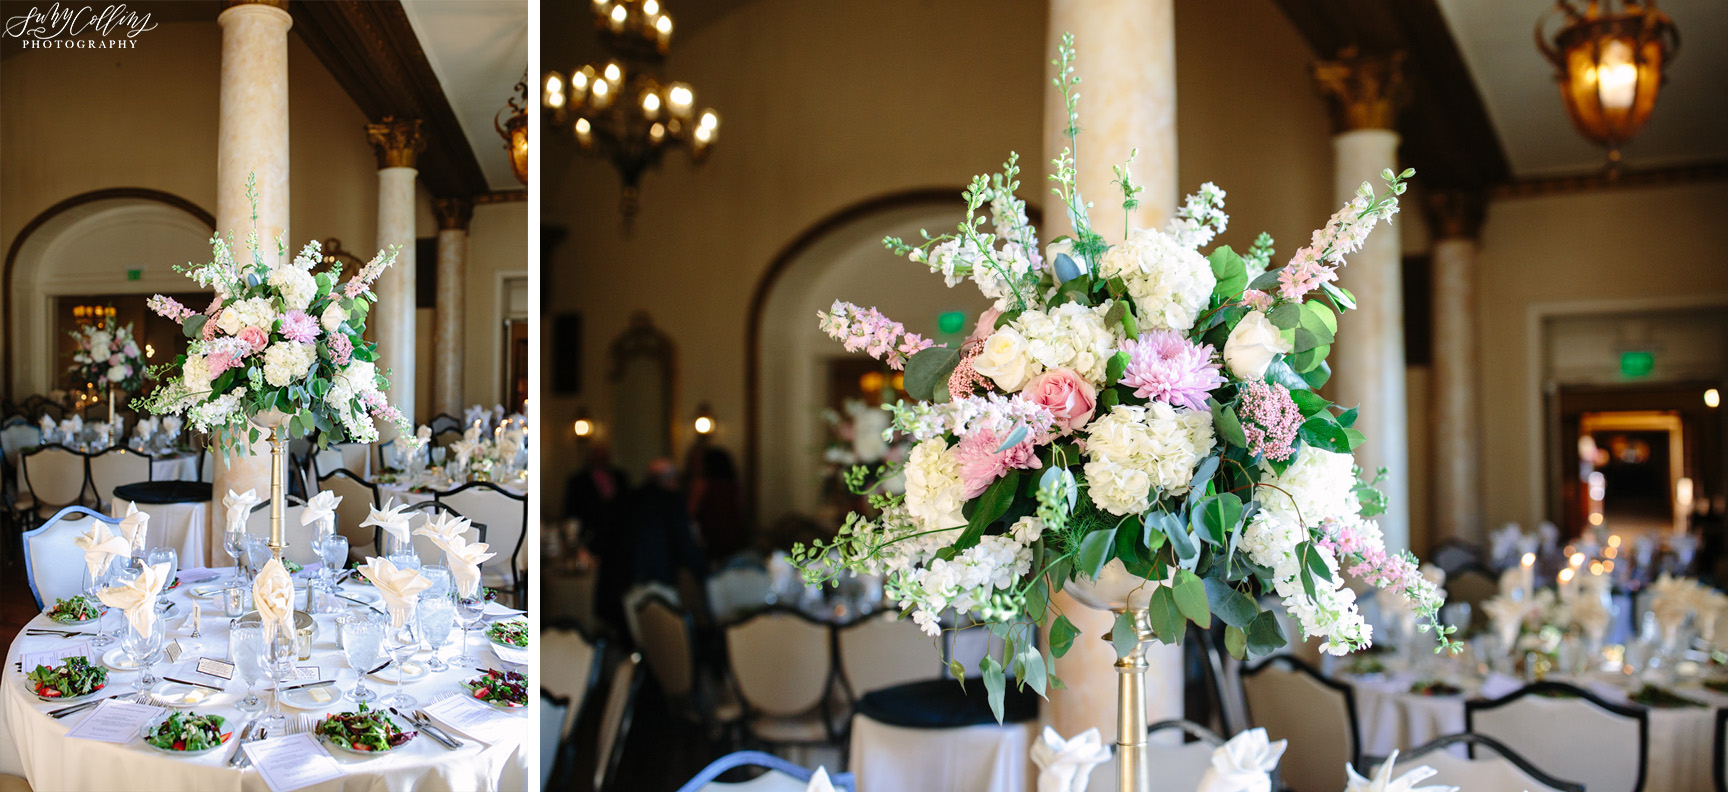 poses, indoor, romantic, spring, light and airy, natural light, ideas, passion, artistic, creative, inspiration, editorial, art, lighting, love, Knoxville, Tennessee, Cherokee country club, vibrant, colorful, bright, flowers, table, reception